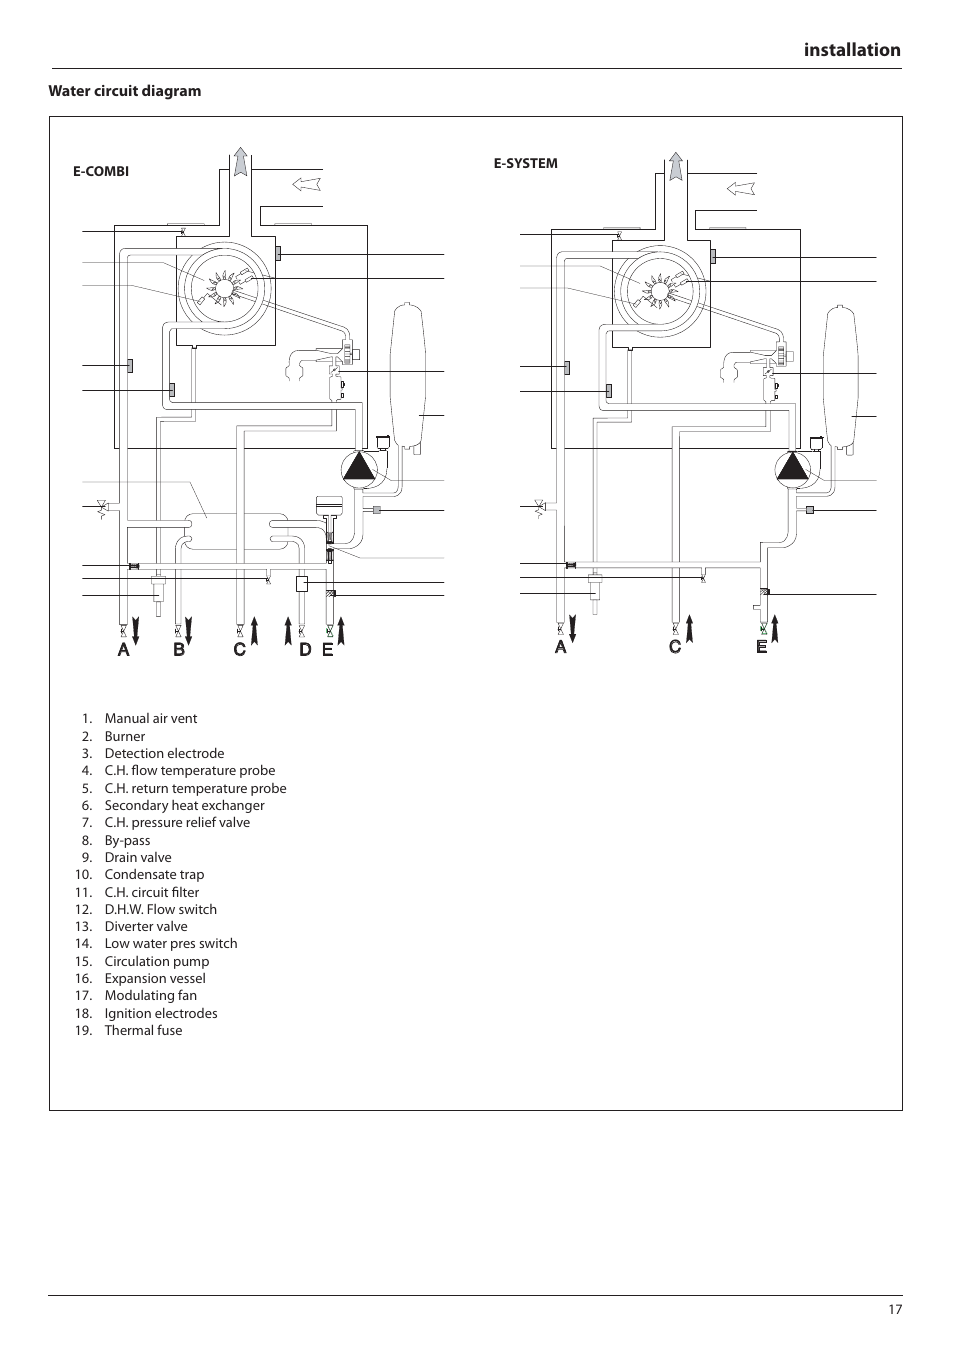 Installation water circuit diagram ariston e combi 24 30 38 user installation water circuit diagram ariston e combi 24 30 38 user manual page 17 56 asfbconference2016 Images